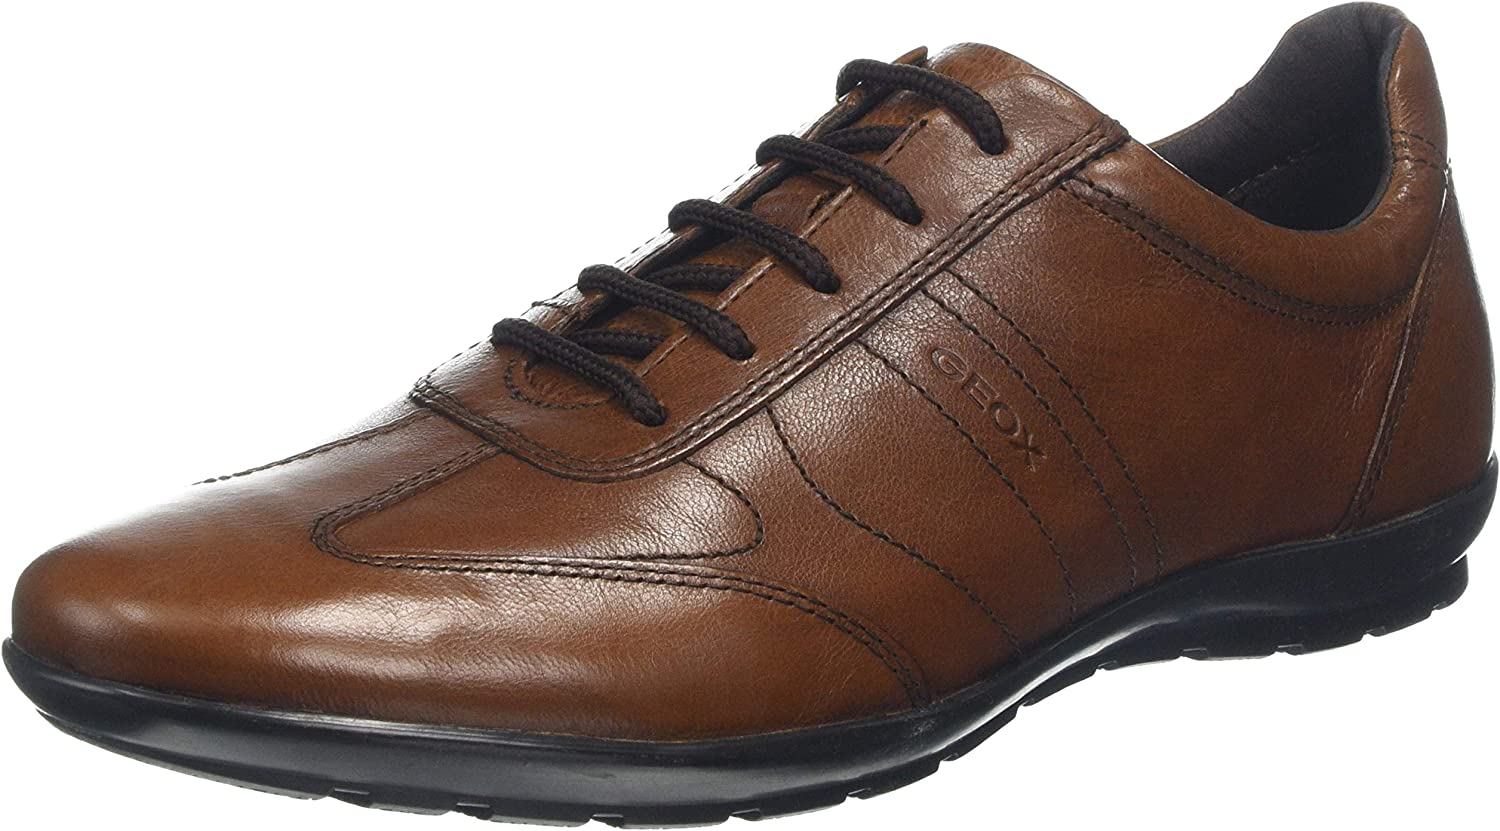 Geox Men's Symbol Leather Lace-Up shoes Oxfords